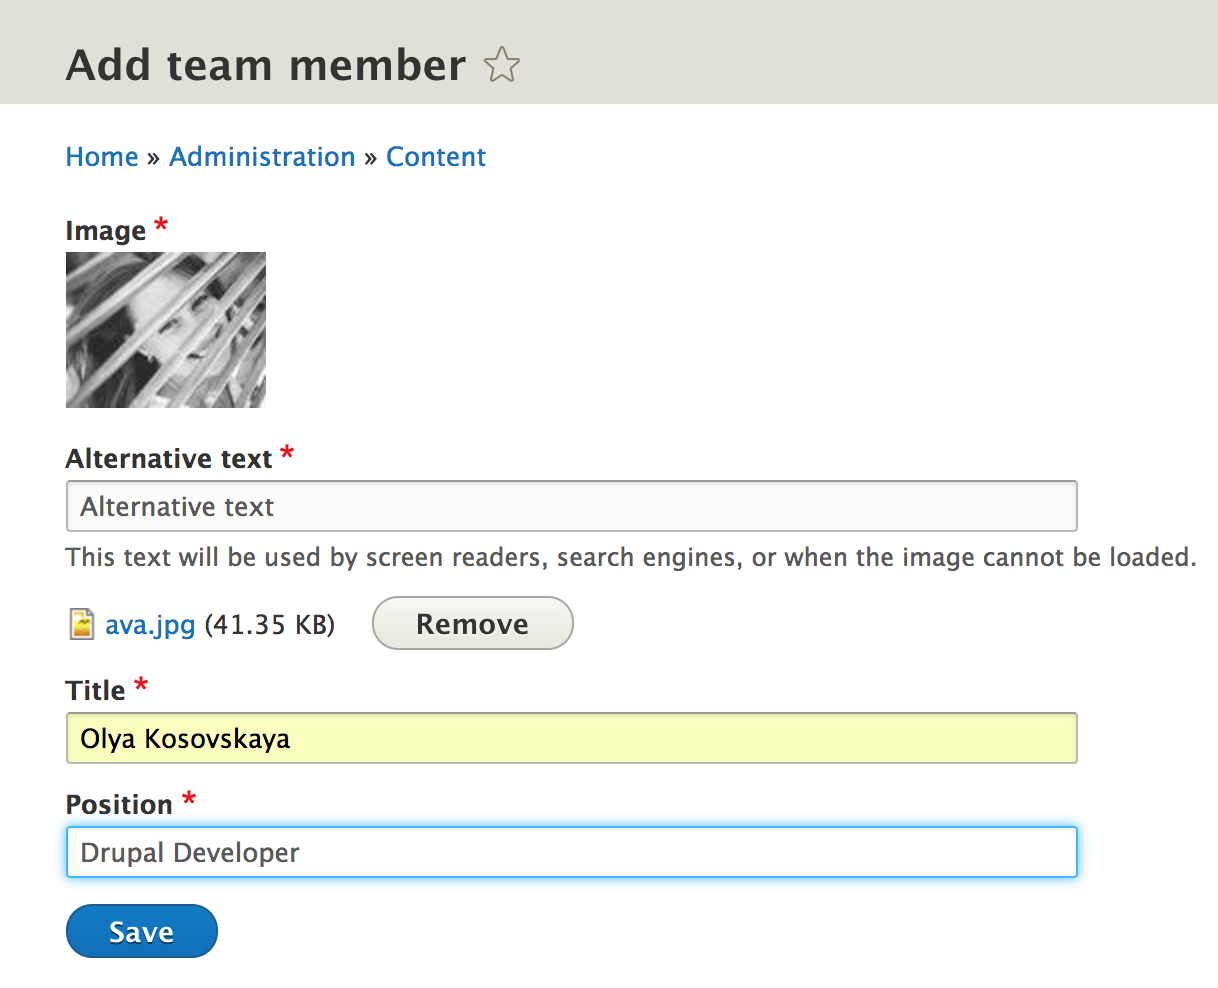 Add team member form